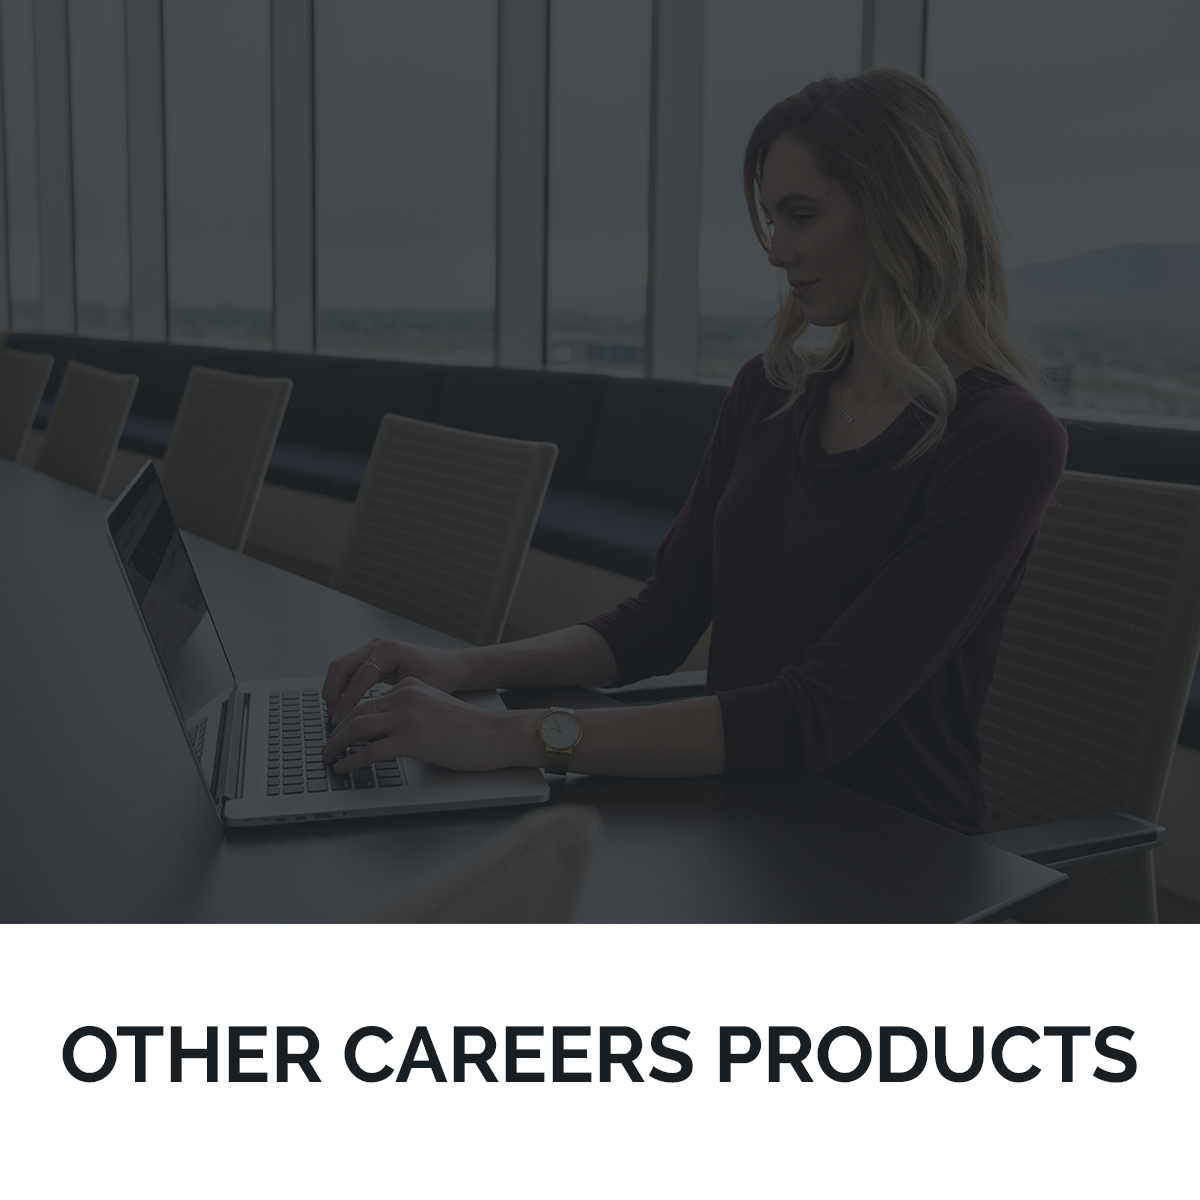 Other Careers Products